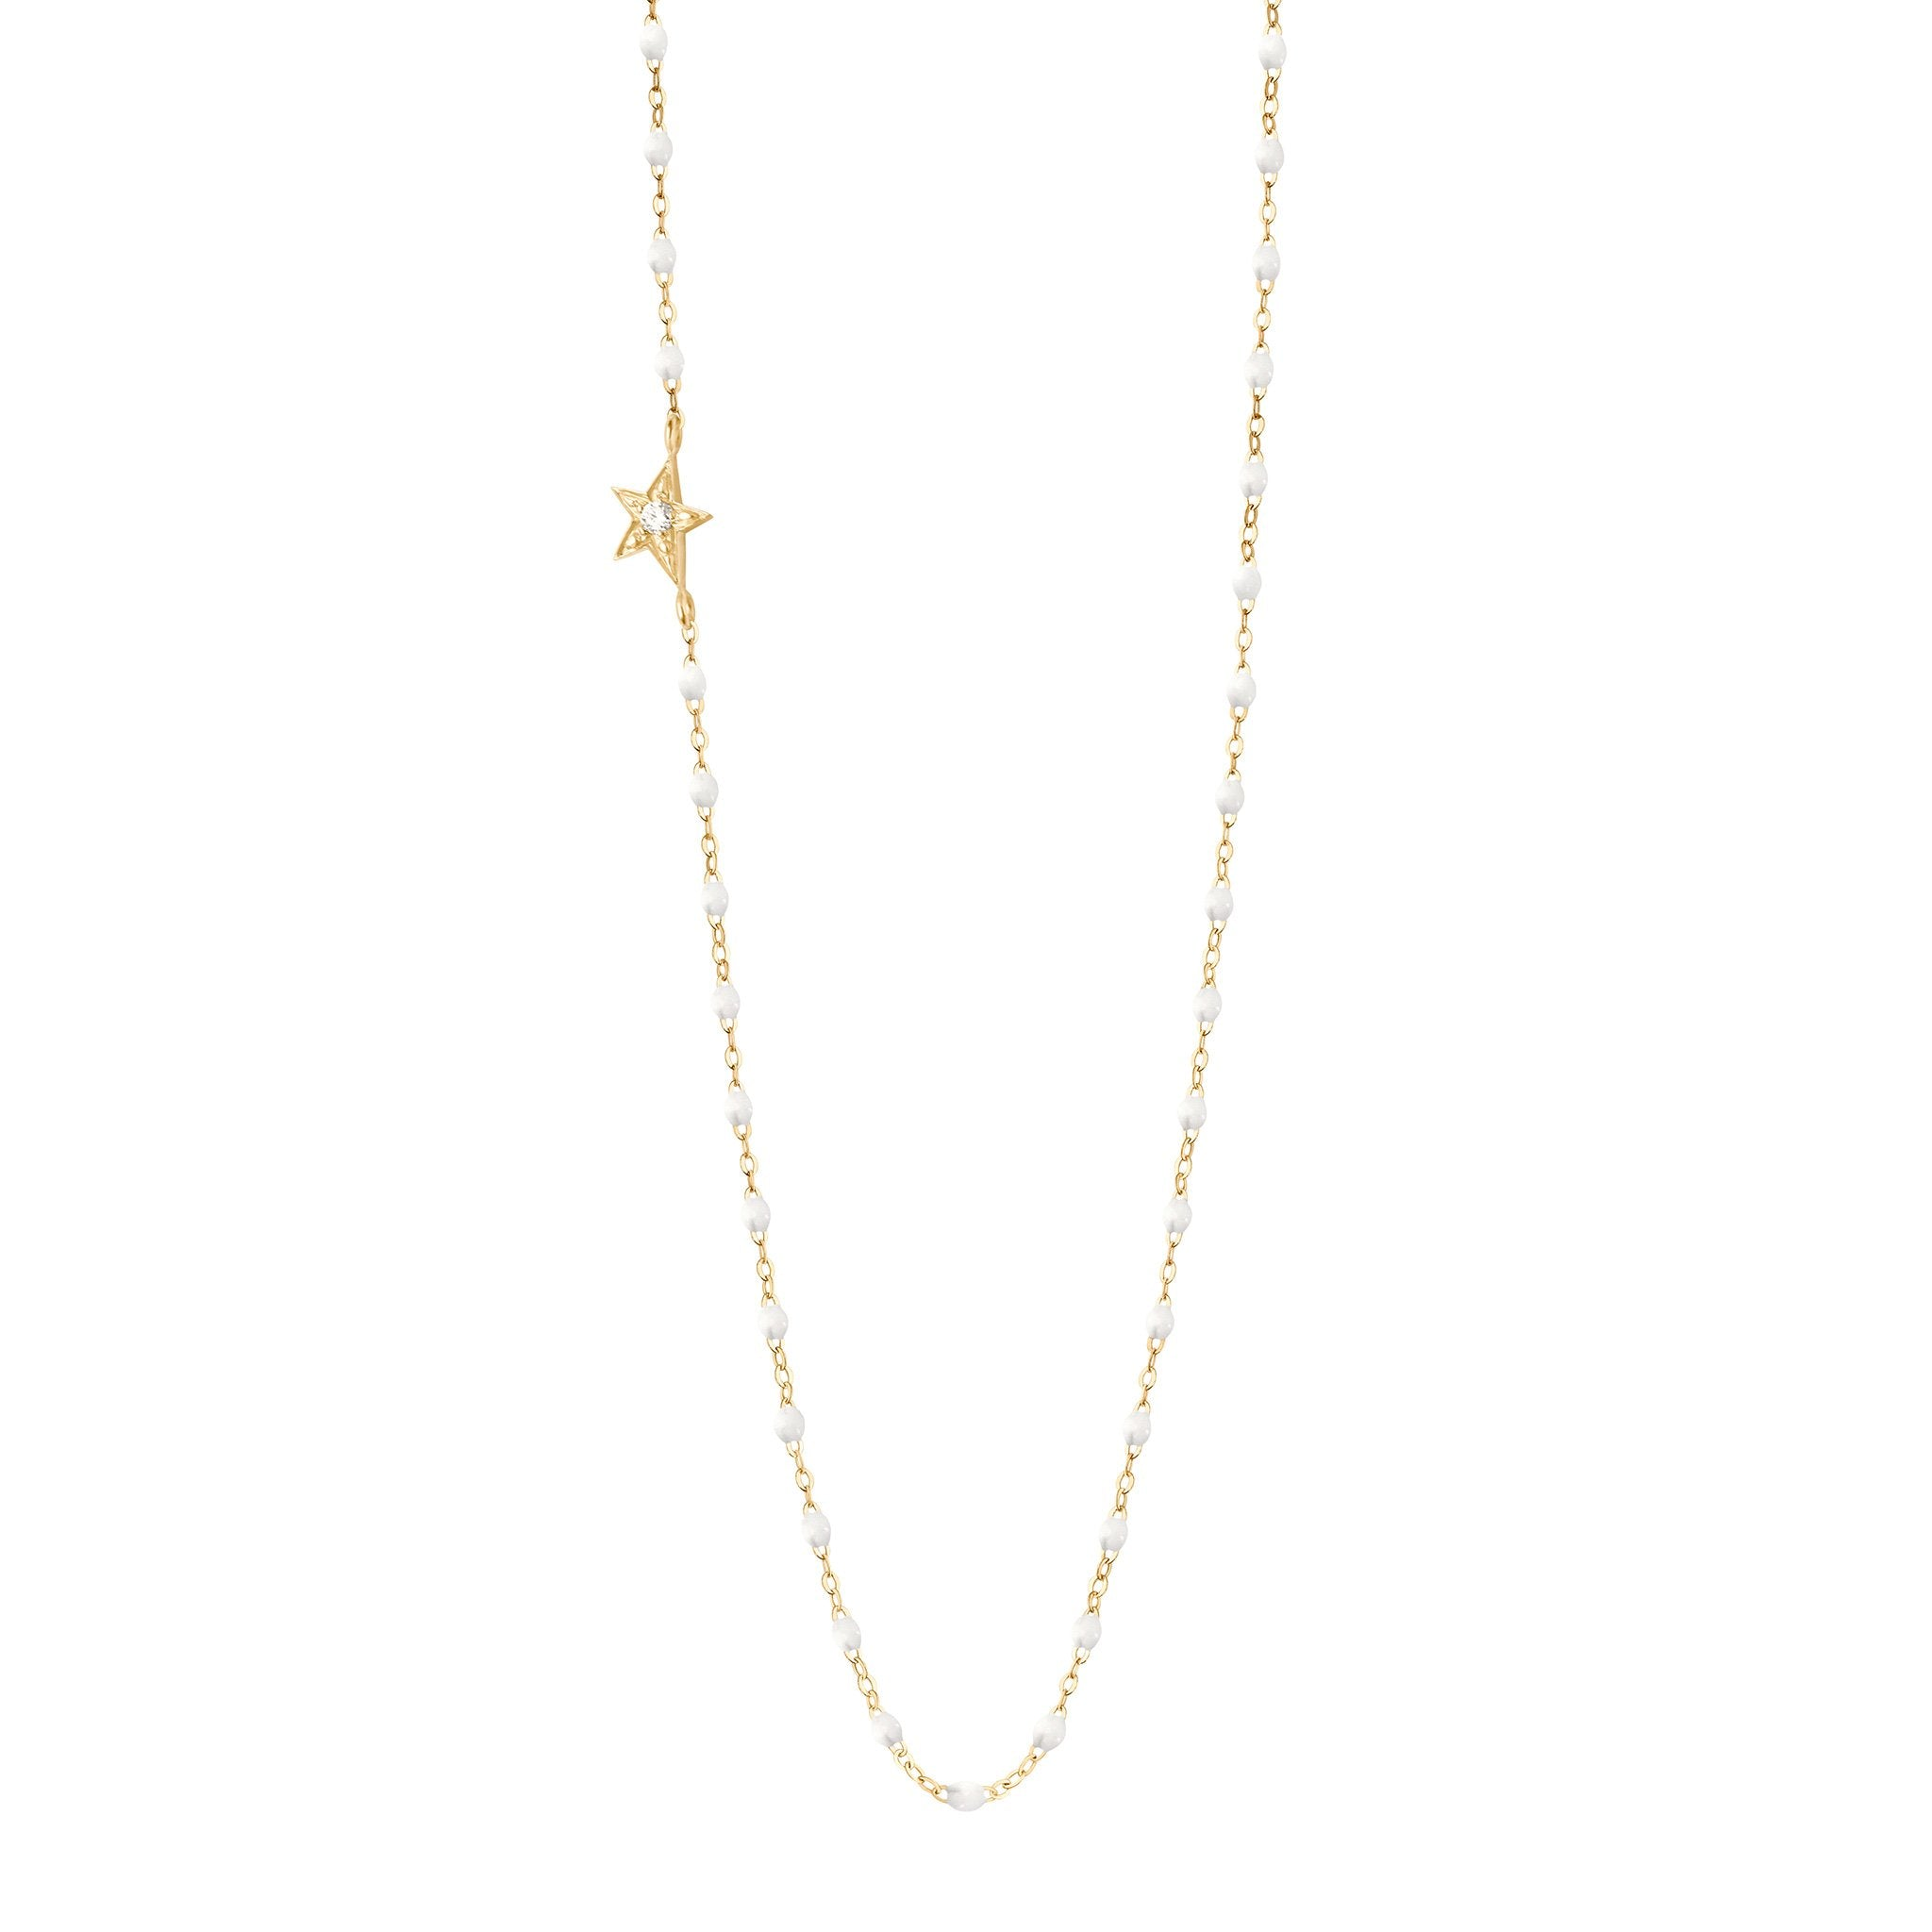 Gigi Clozeau - Star Classic Gigi White diamond necklace, Yellow Gold, 16.5""